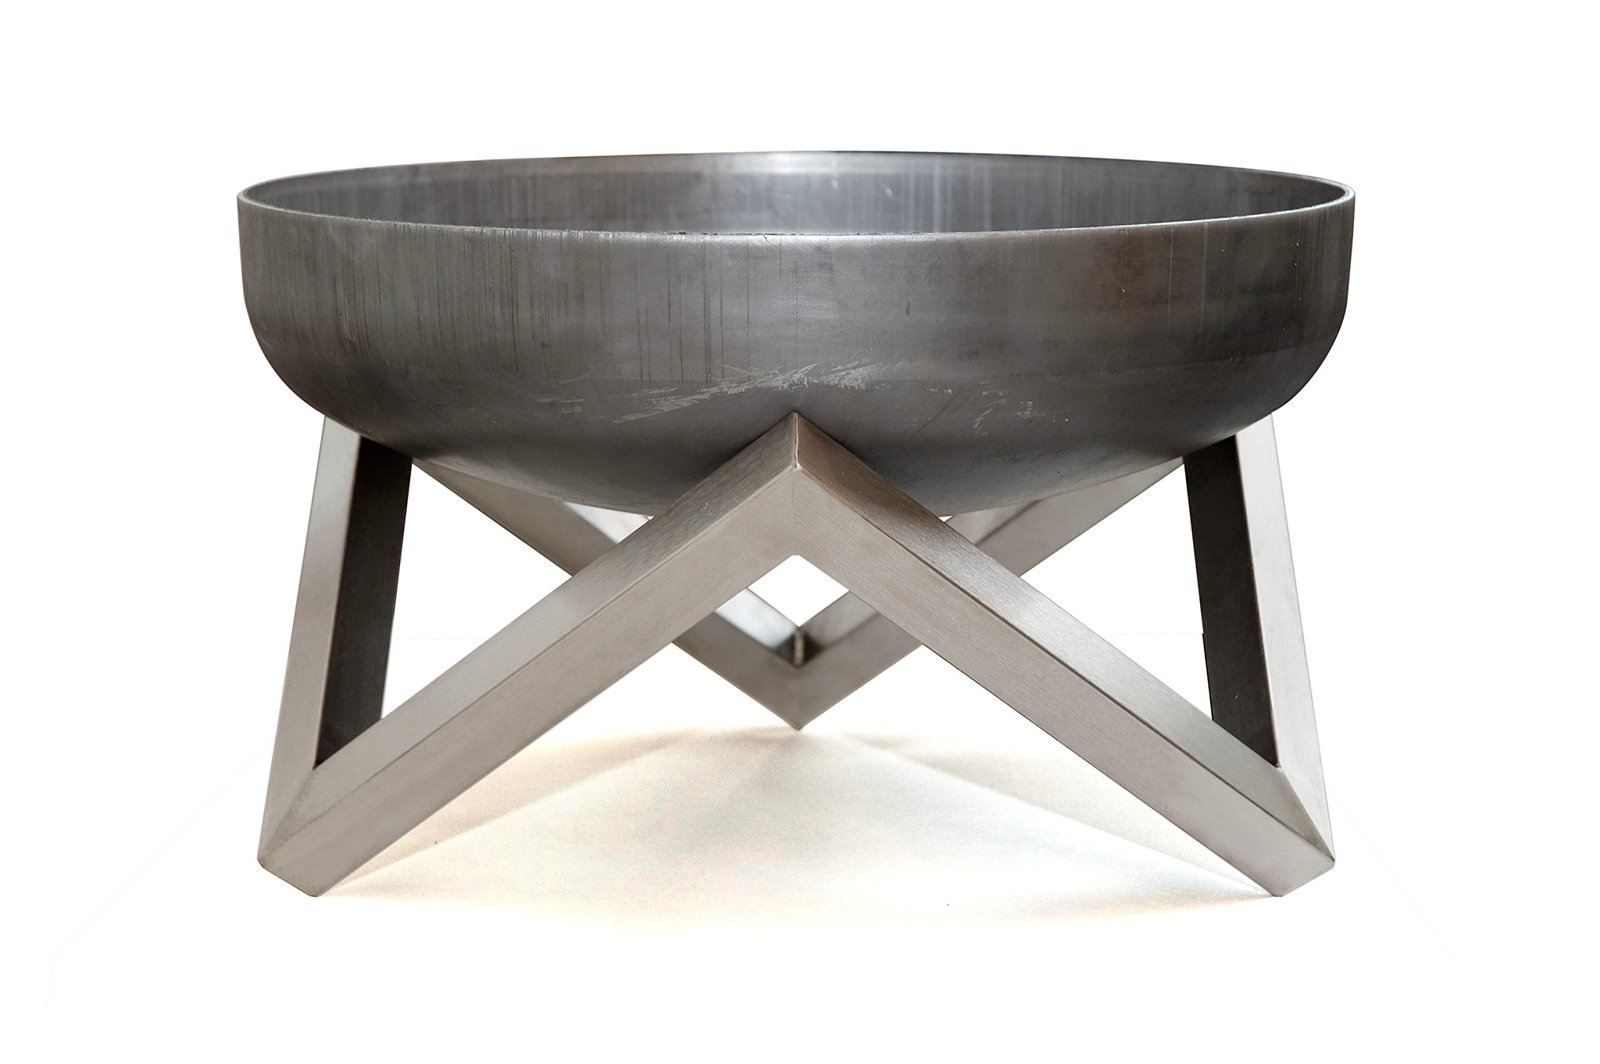 Rust stainless steel modern outdoor patio fire pit memel for Outdoor modern fire pit